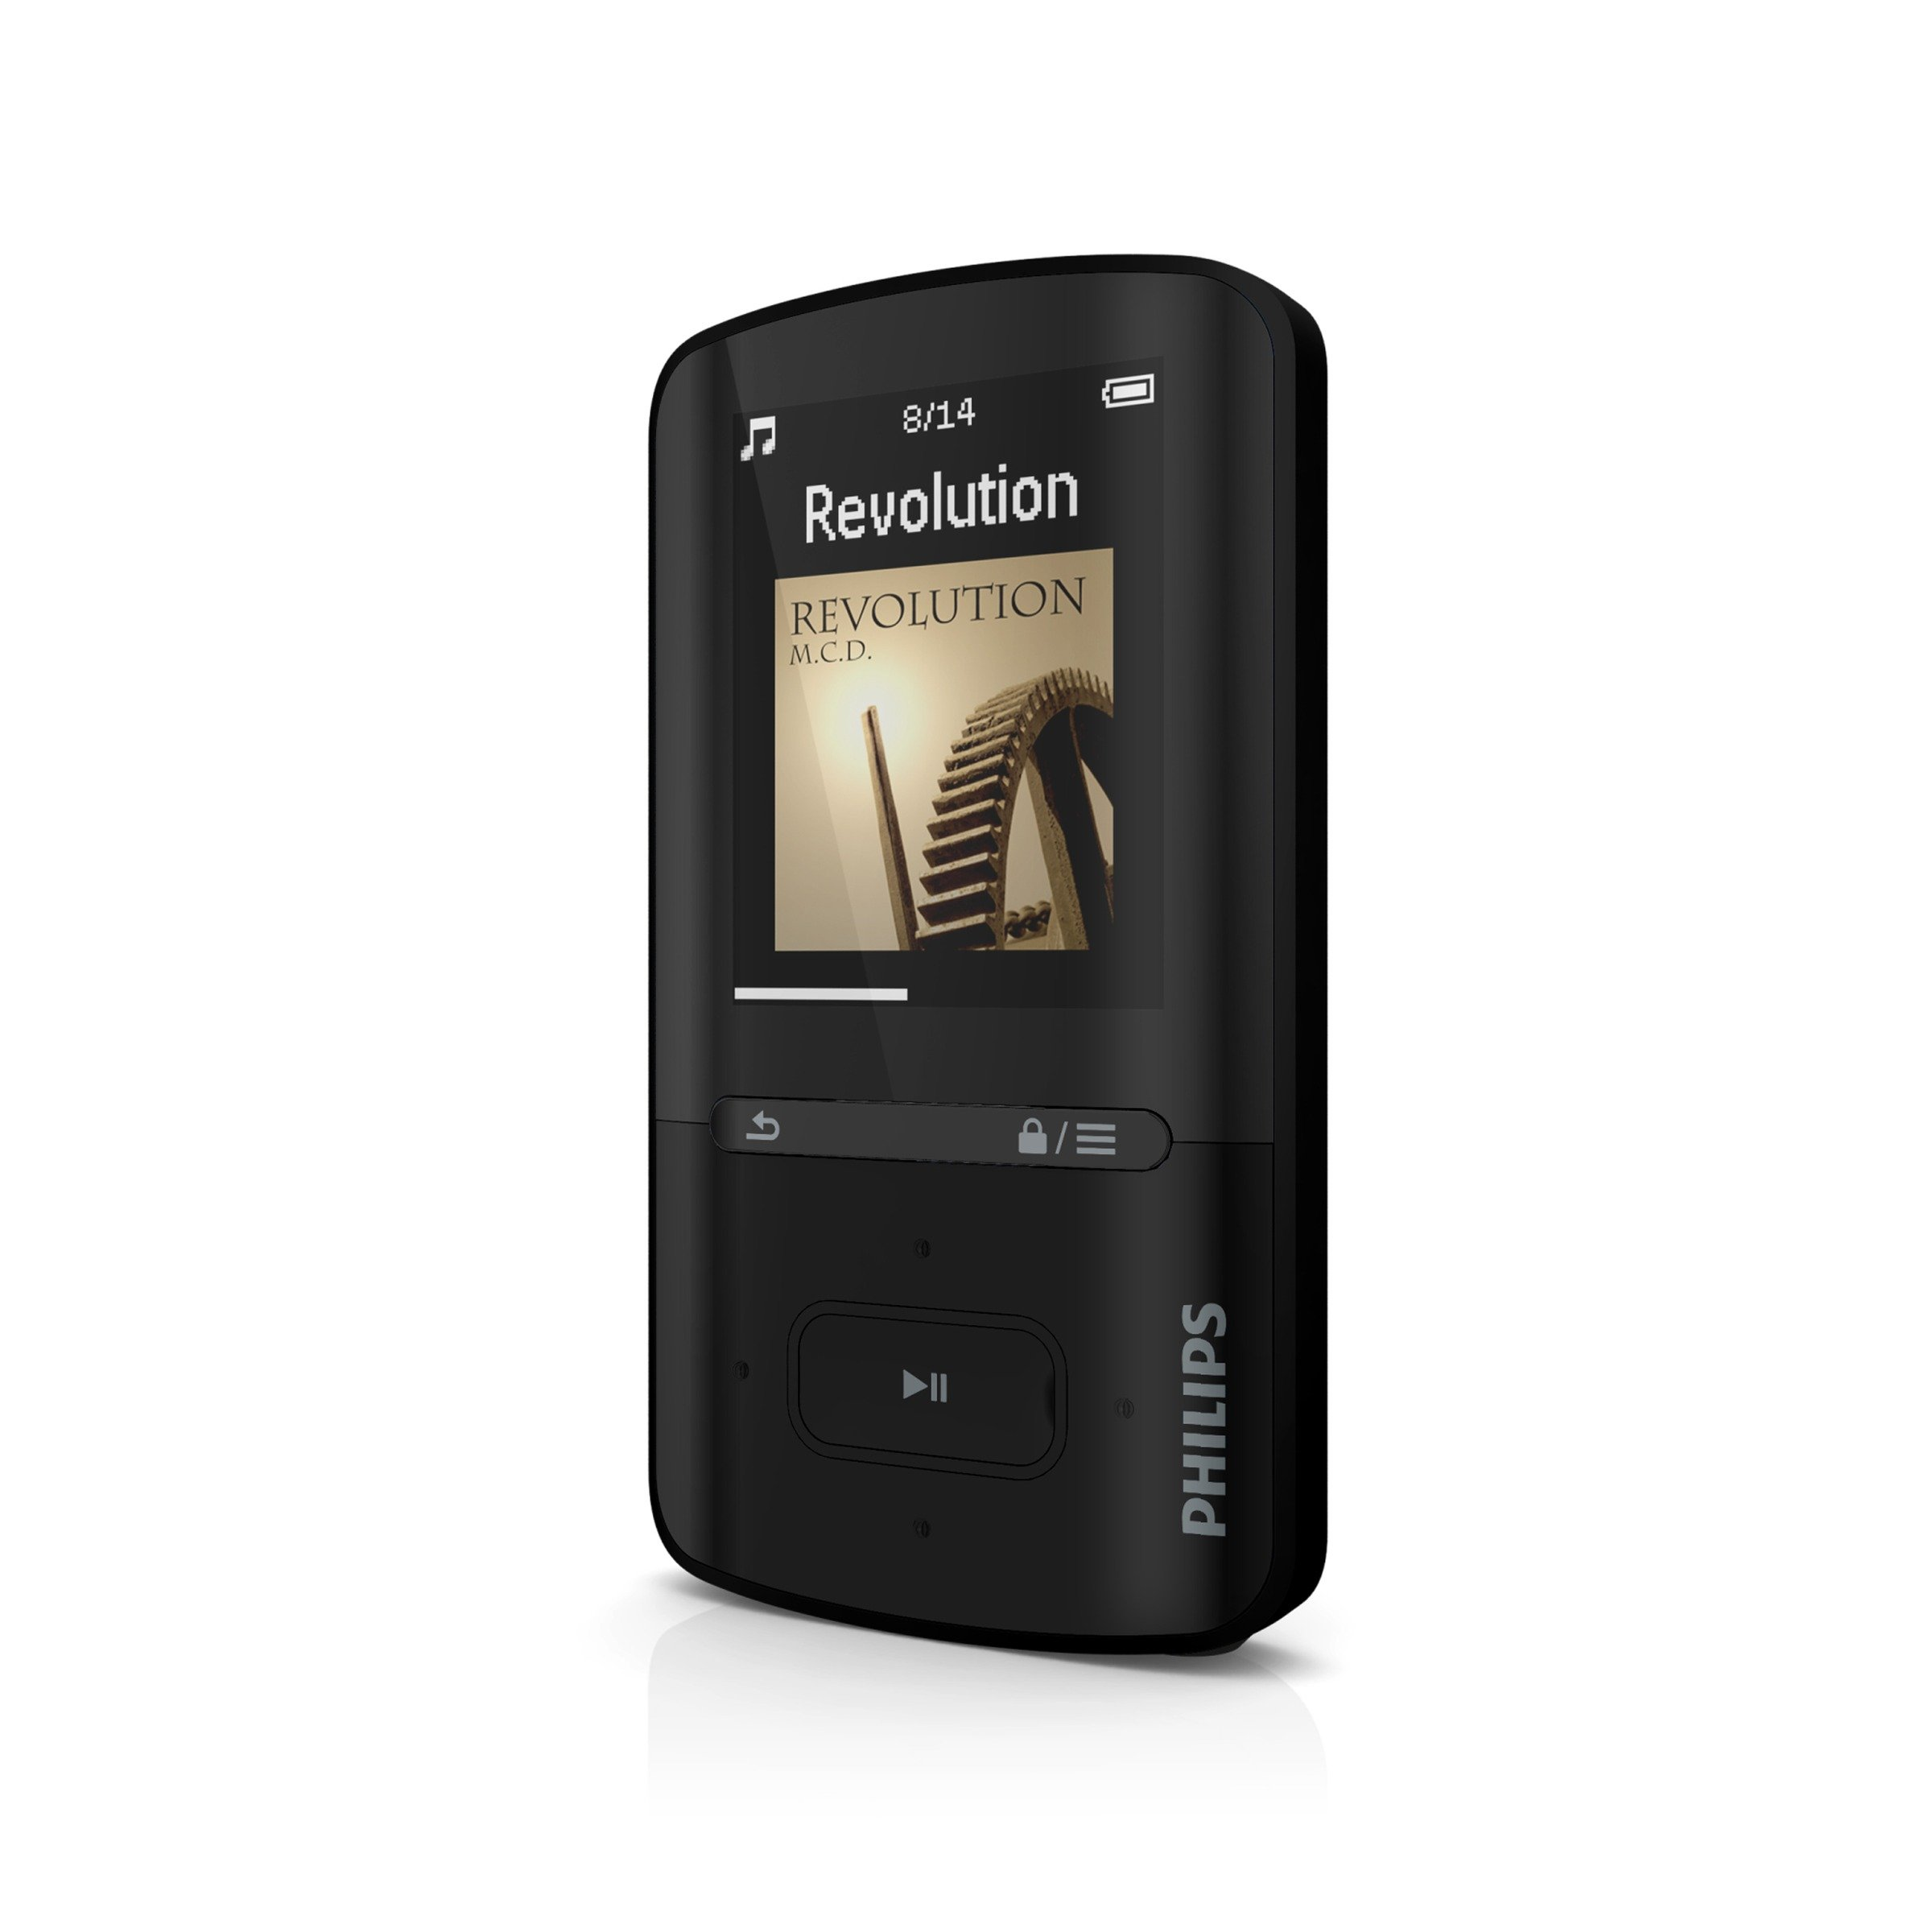 philips gogear sa4vbe04kn 12 vibe 4gb mp4 mp3 video player black new 8712581532857 ebay. Black Bedroom Furniture Sets. Home Design Ideas